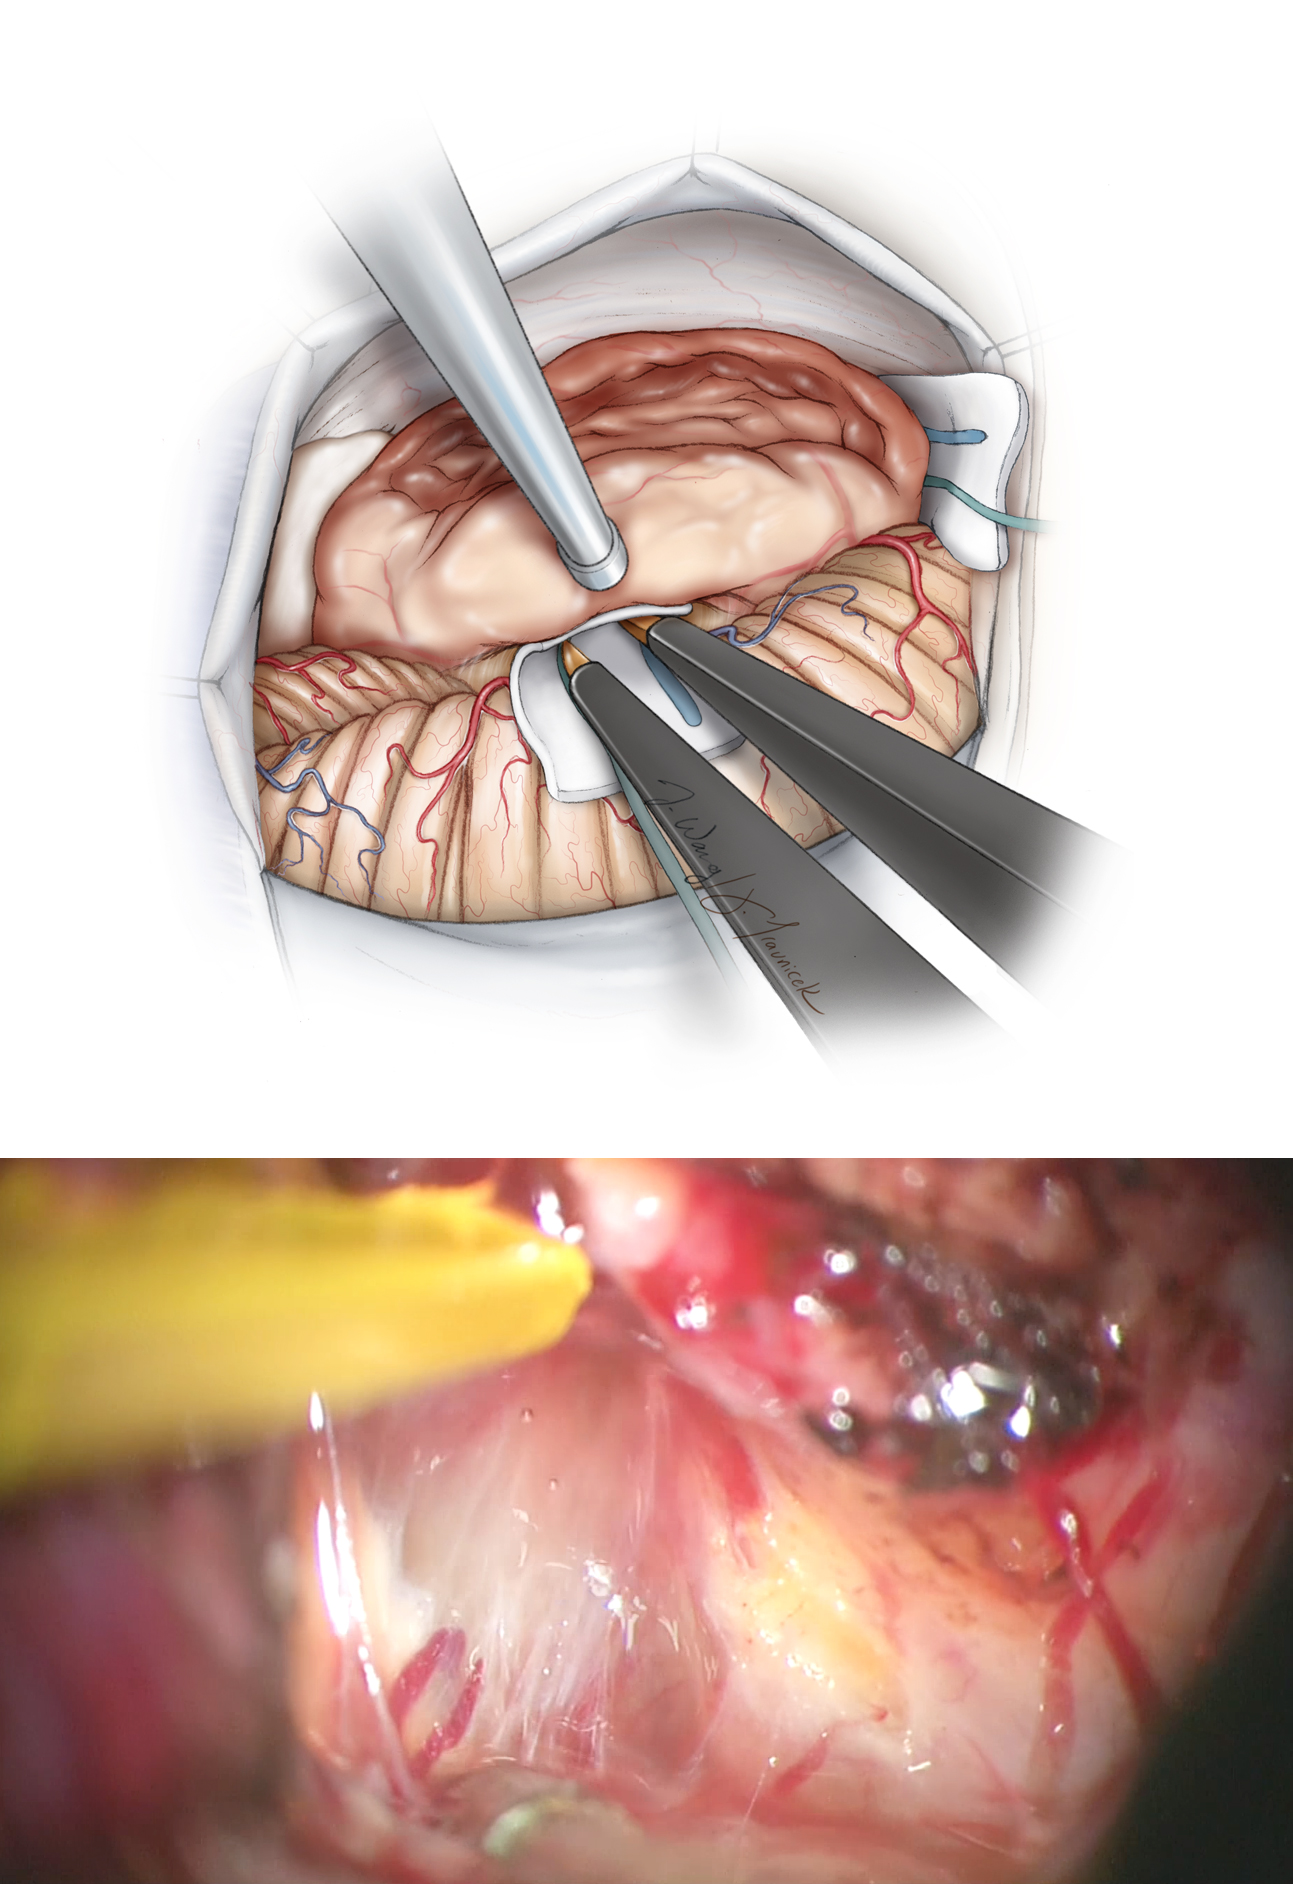 "Figure 12: Cottonoid patties are used to ""wipe"" the middle cerebellar peduncle away from the mobilized tumor capsule where the pial planes are not preserved (top sketch). If the pial planes are not recognizable at one point, the dissection is diverted to another location (the poles of the tumor) where the planes are more recognizable. If the arachnoid planes are intact (lower photo), the microforceps are used to mobilize the pia away from the tumor. The small pial vessels are protected when possible and coagulation minimized. Pial bleeding is controlled via gentle tamponade using thrombin-soaked Gelfoam pledgets and irrigation fluid."